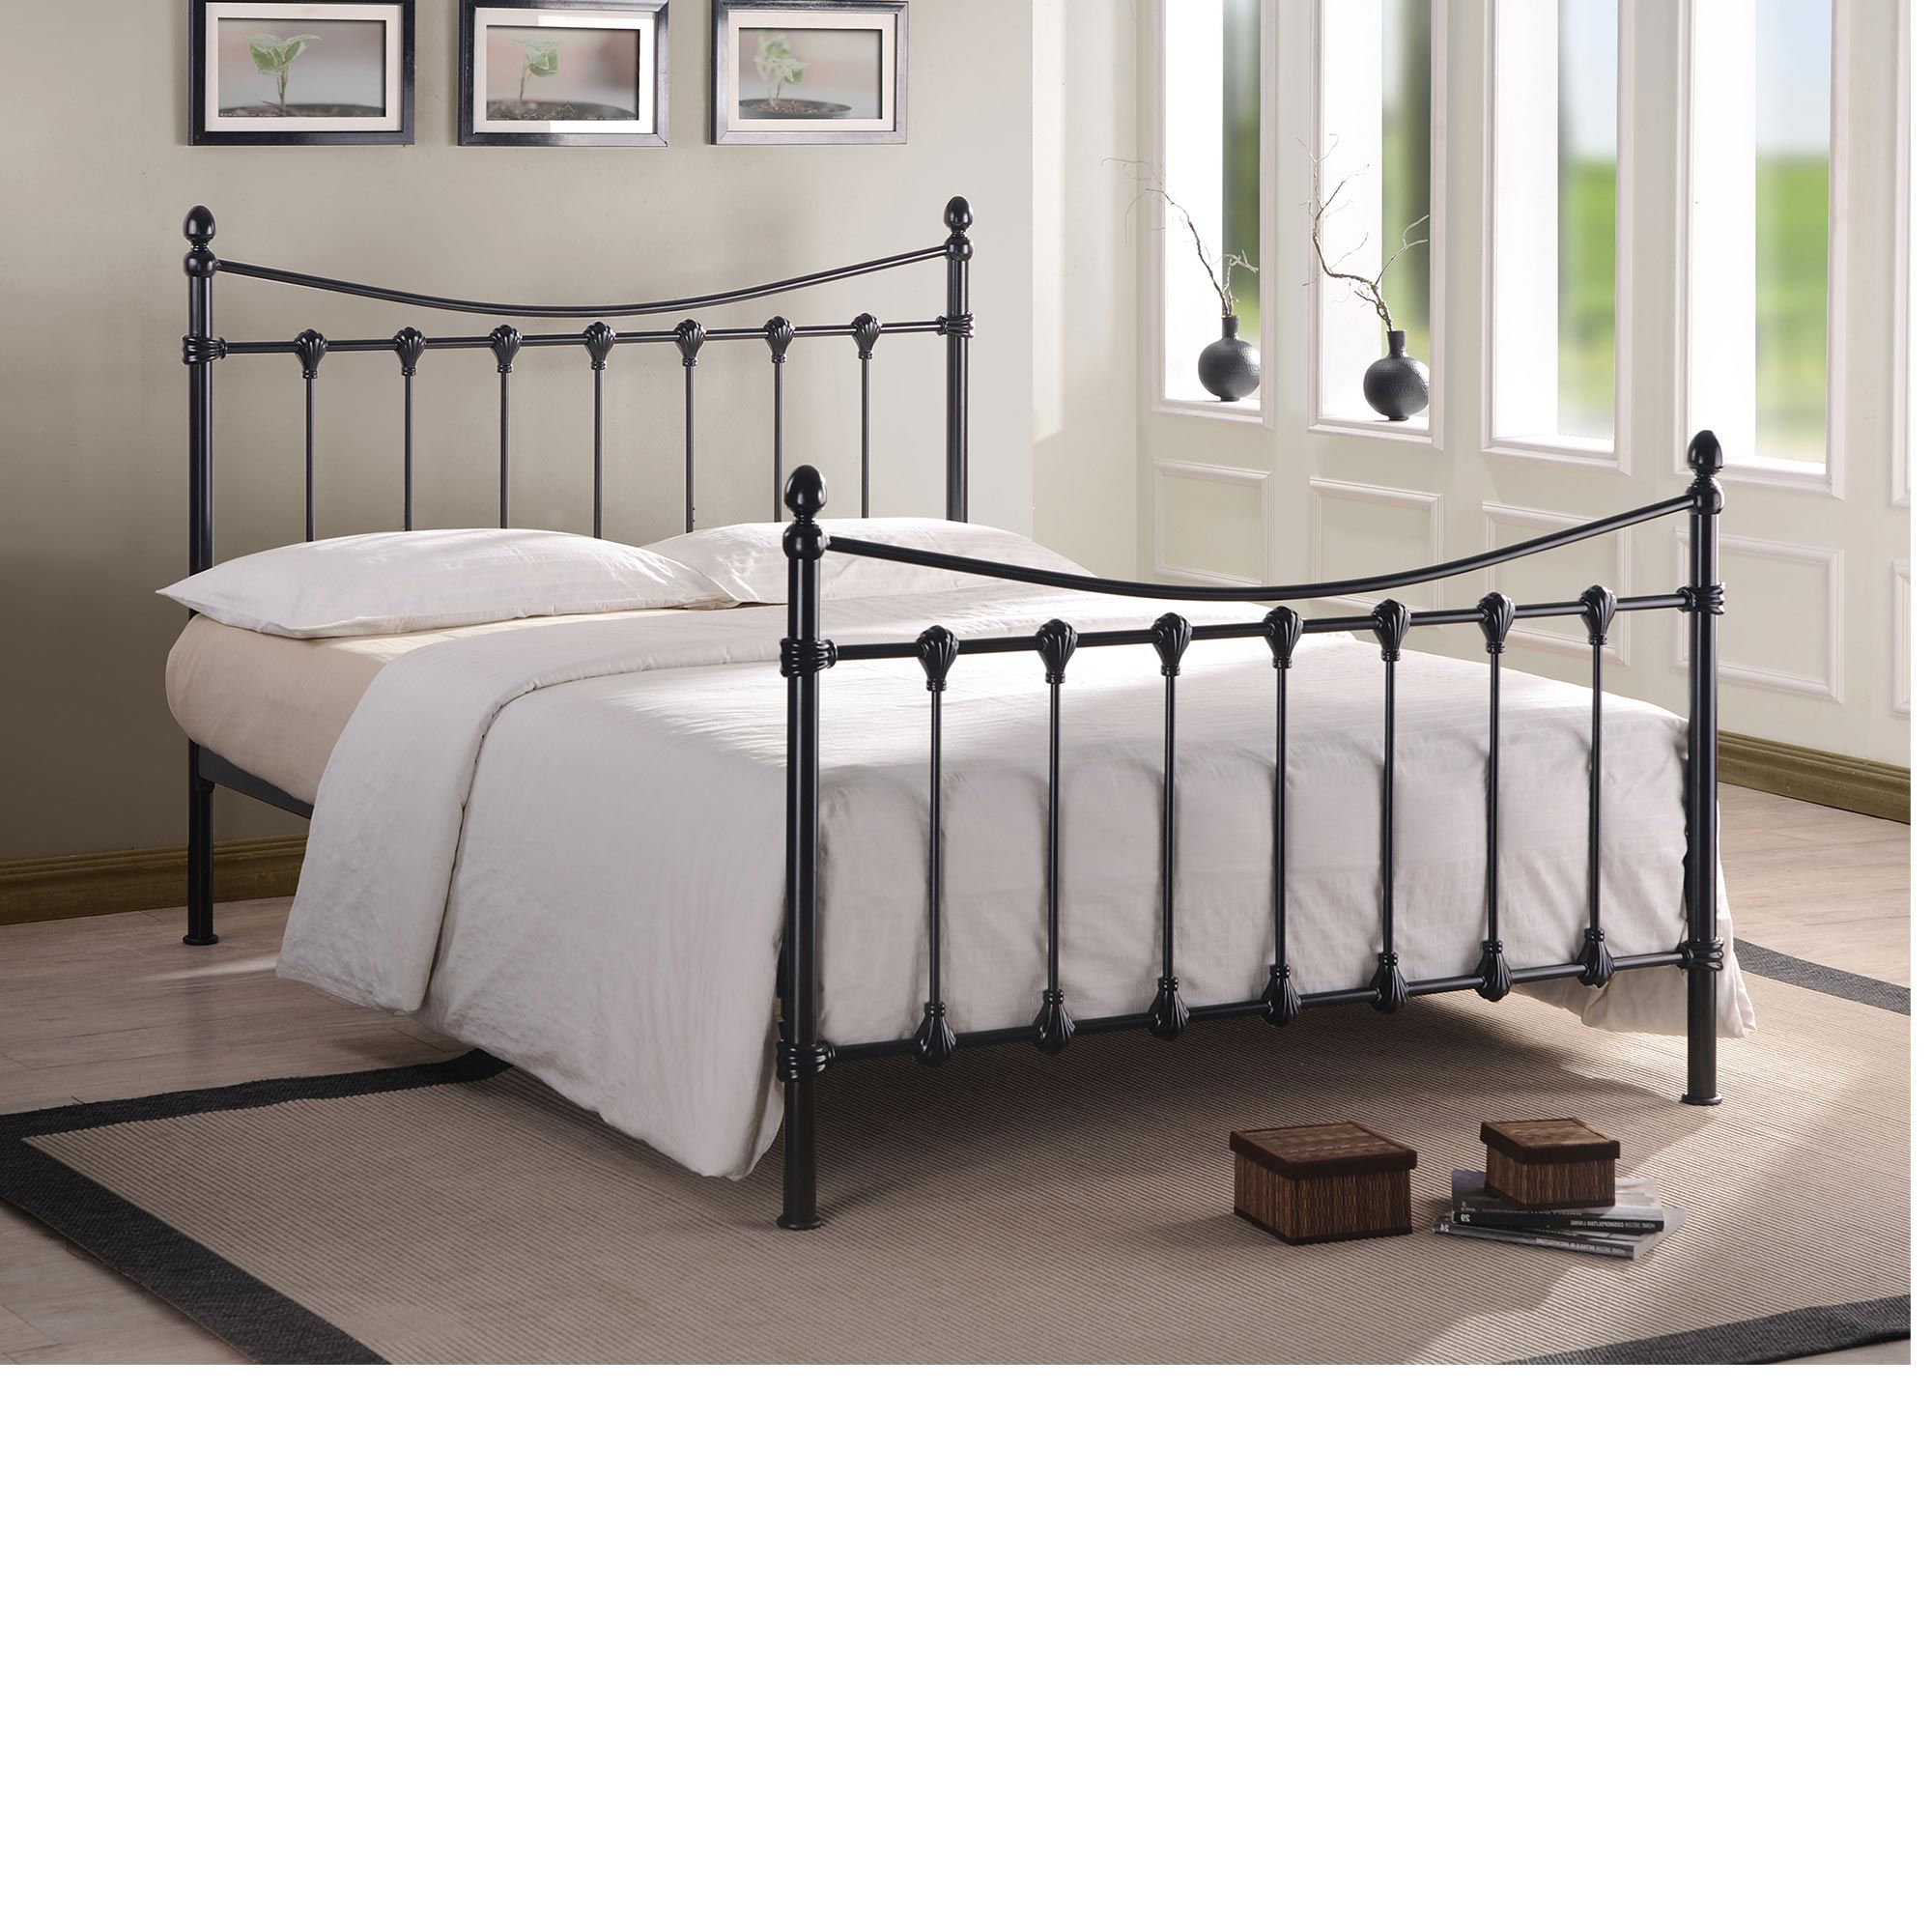 Black Metal Queen Bed Frame with white bedding and grey walls. 60